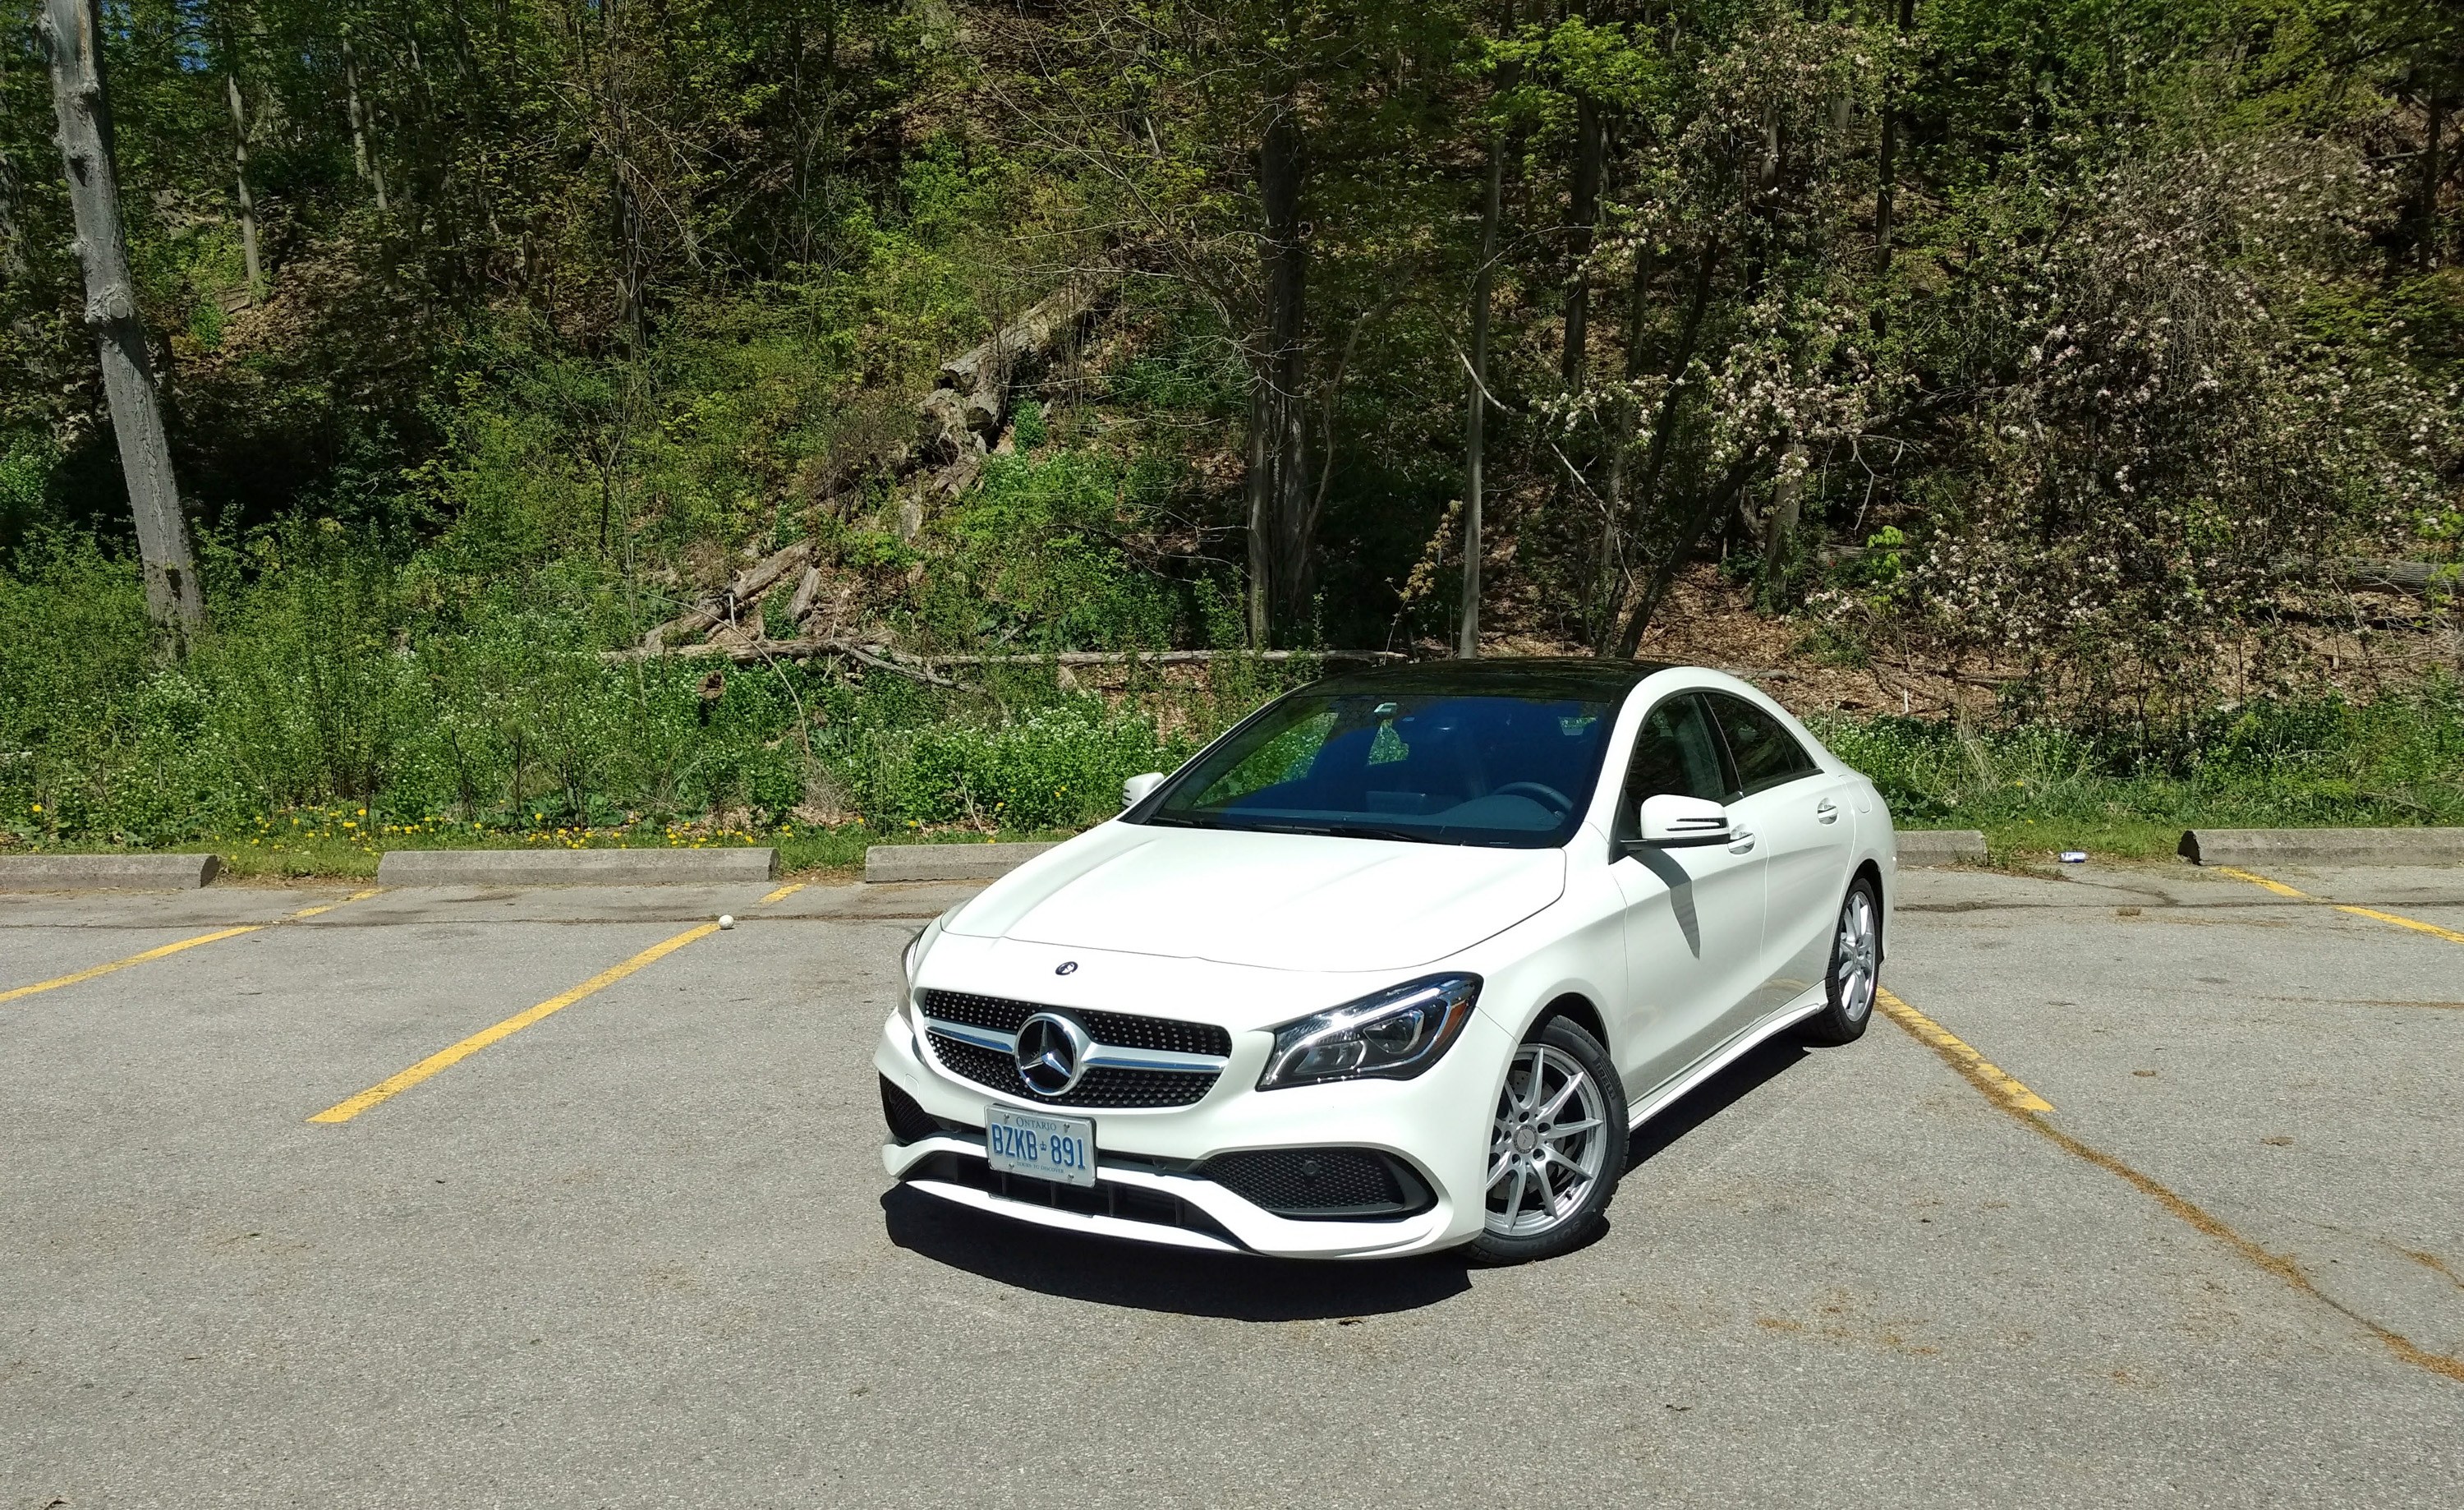 2017 Mercedes Cla 250 4matic Review Front3q High